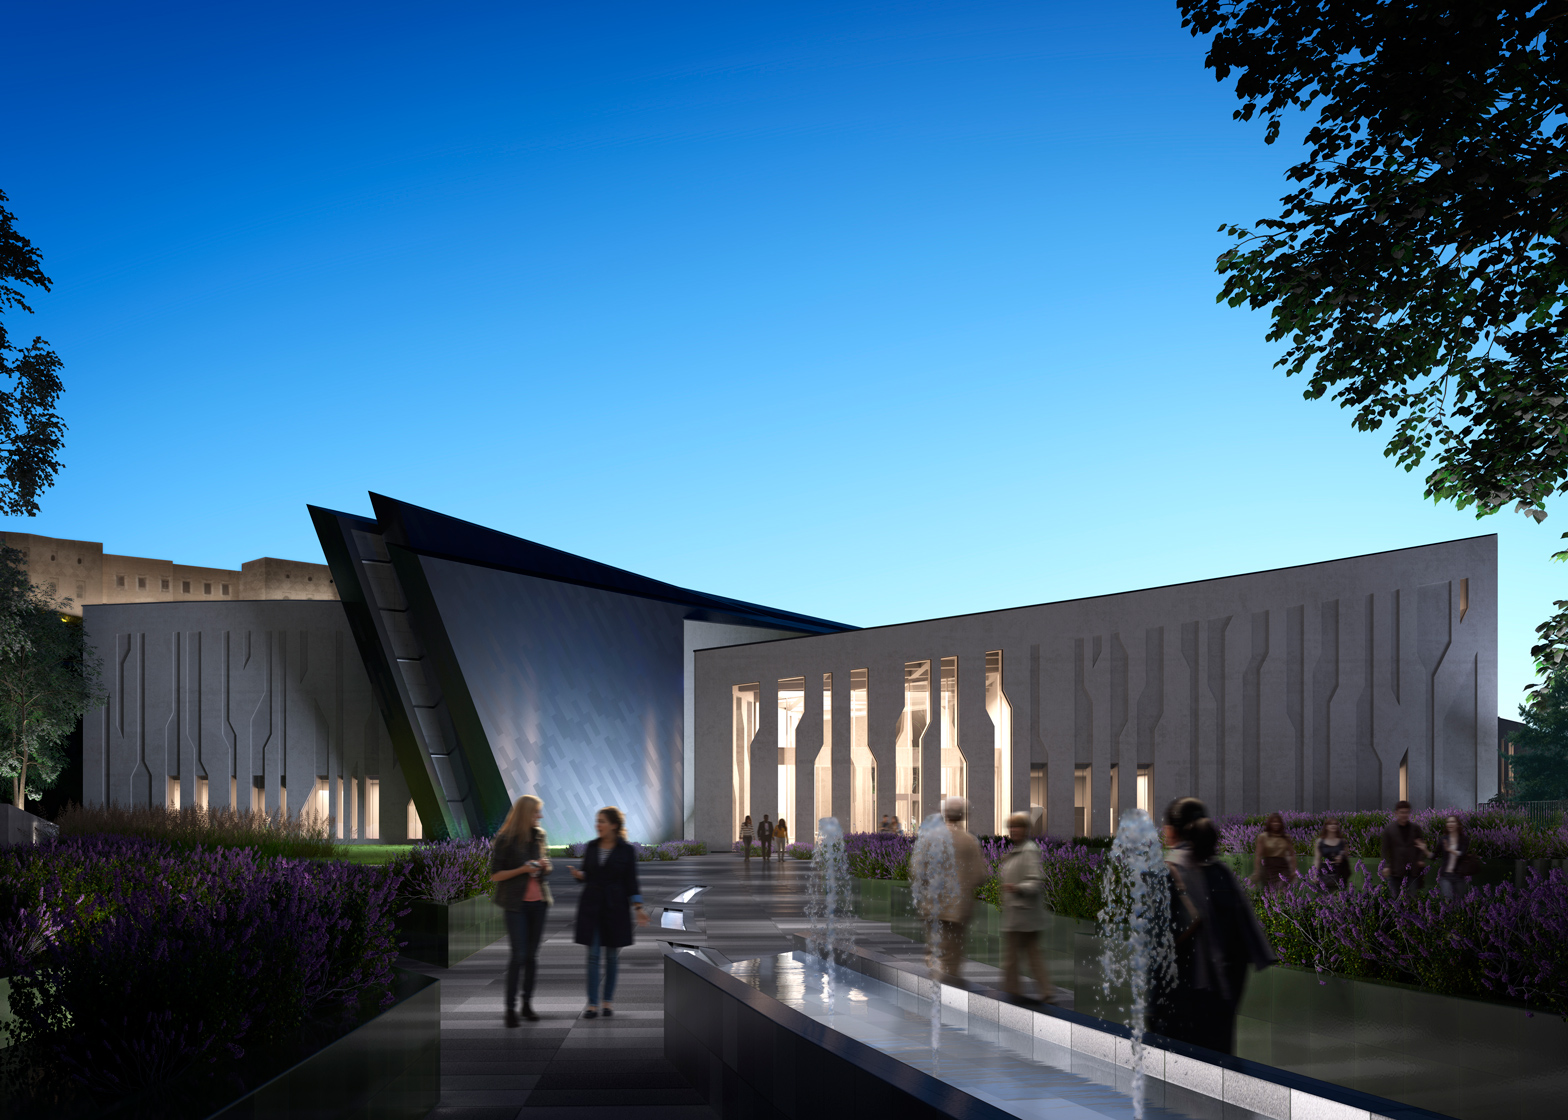 Kurdistan Museum for Iraq by Daniel Libeskind